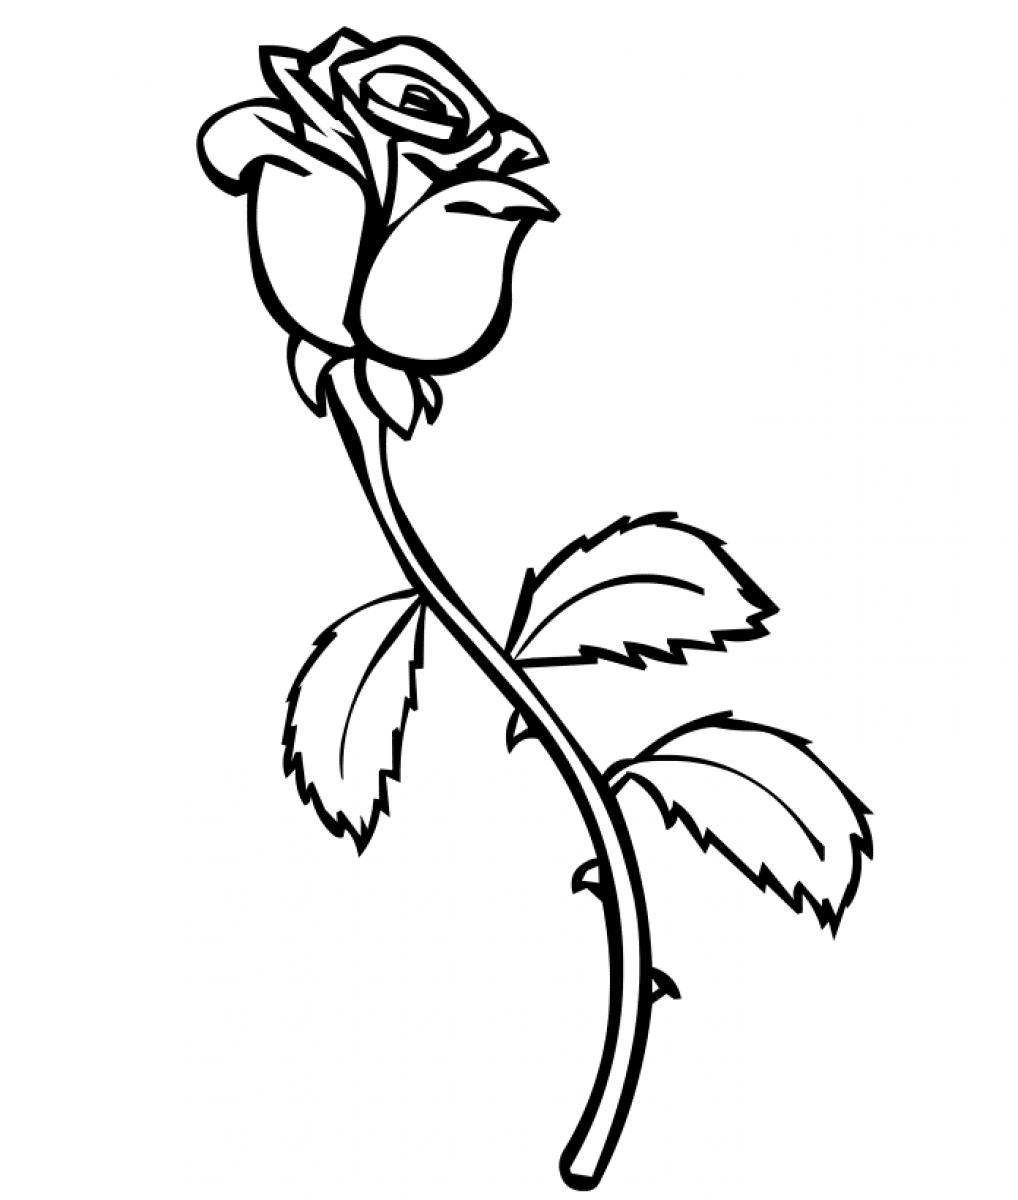 coloring picture rose rose color clipart 20 free cliparts download images on rose coloring picture